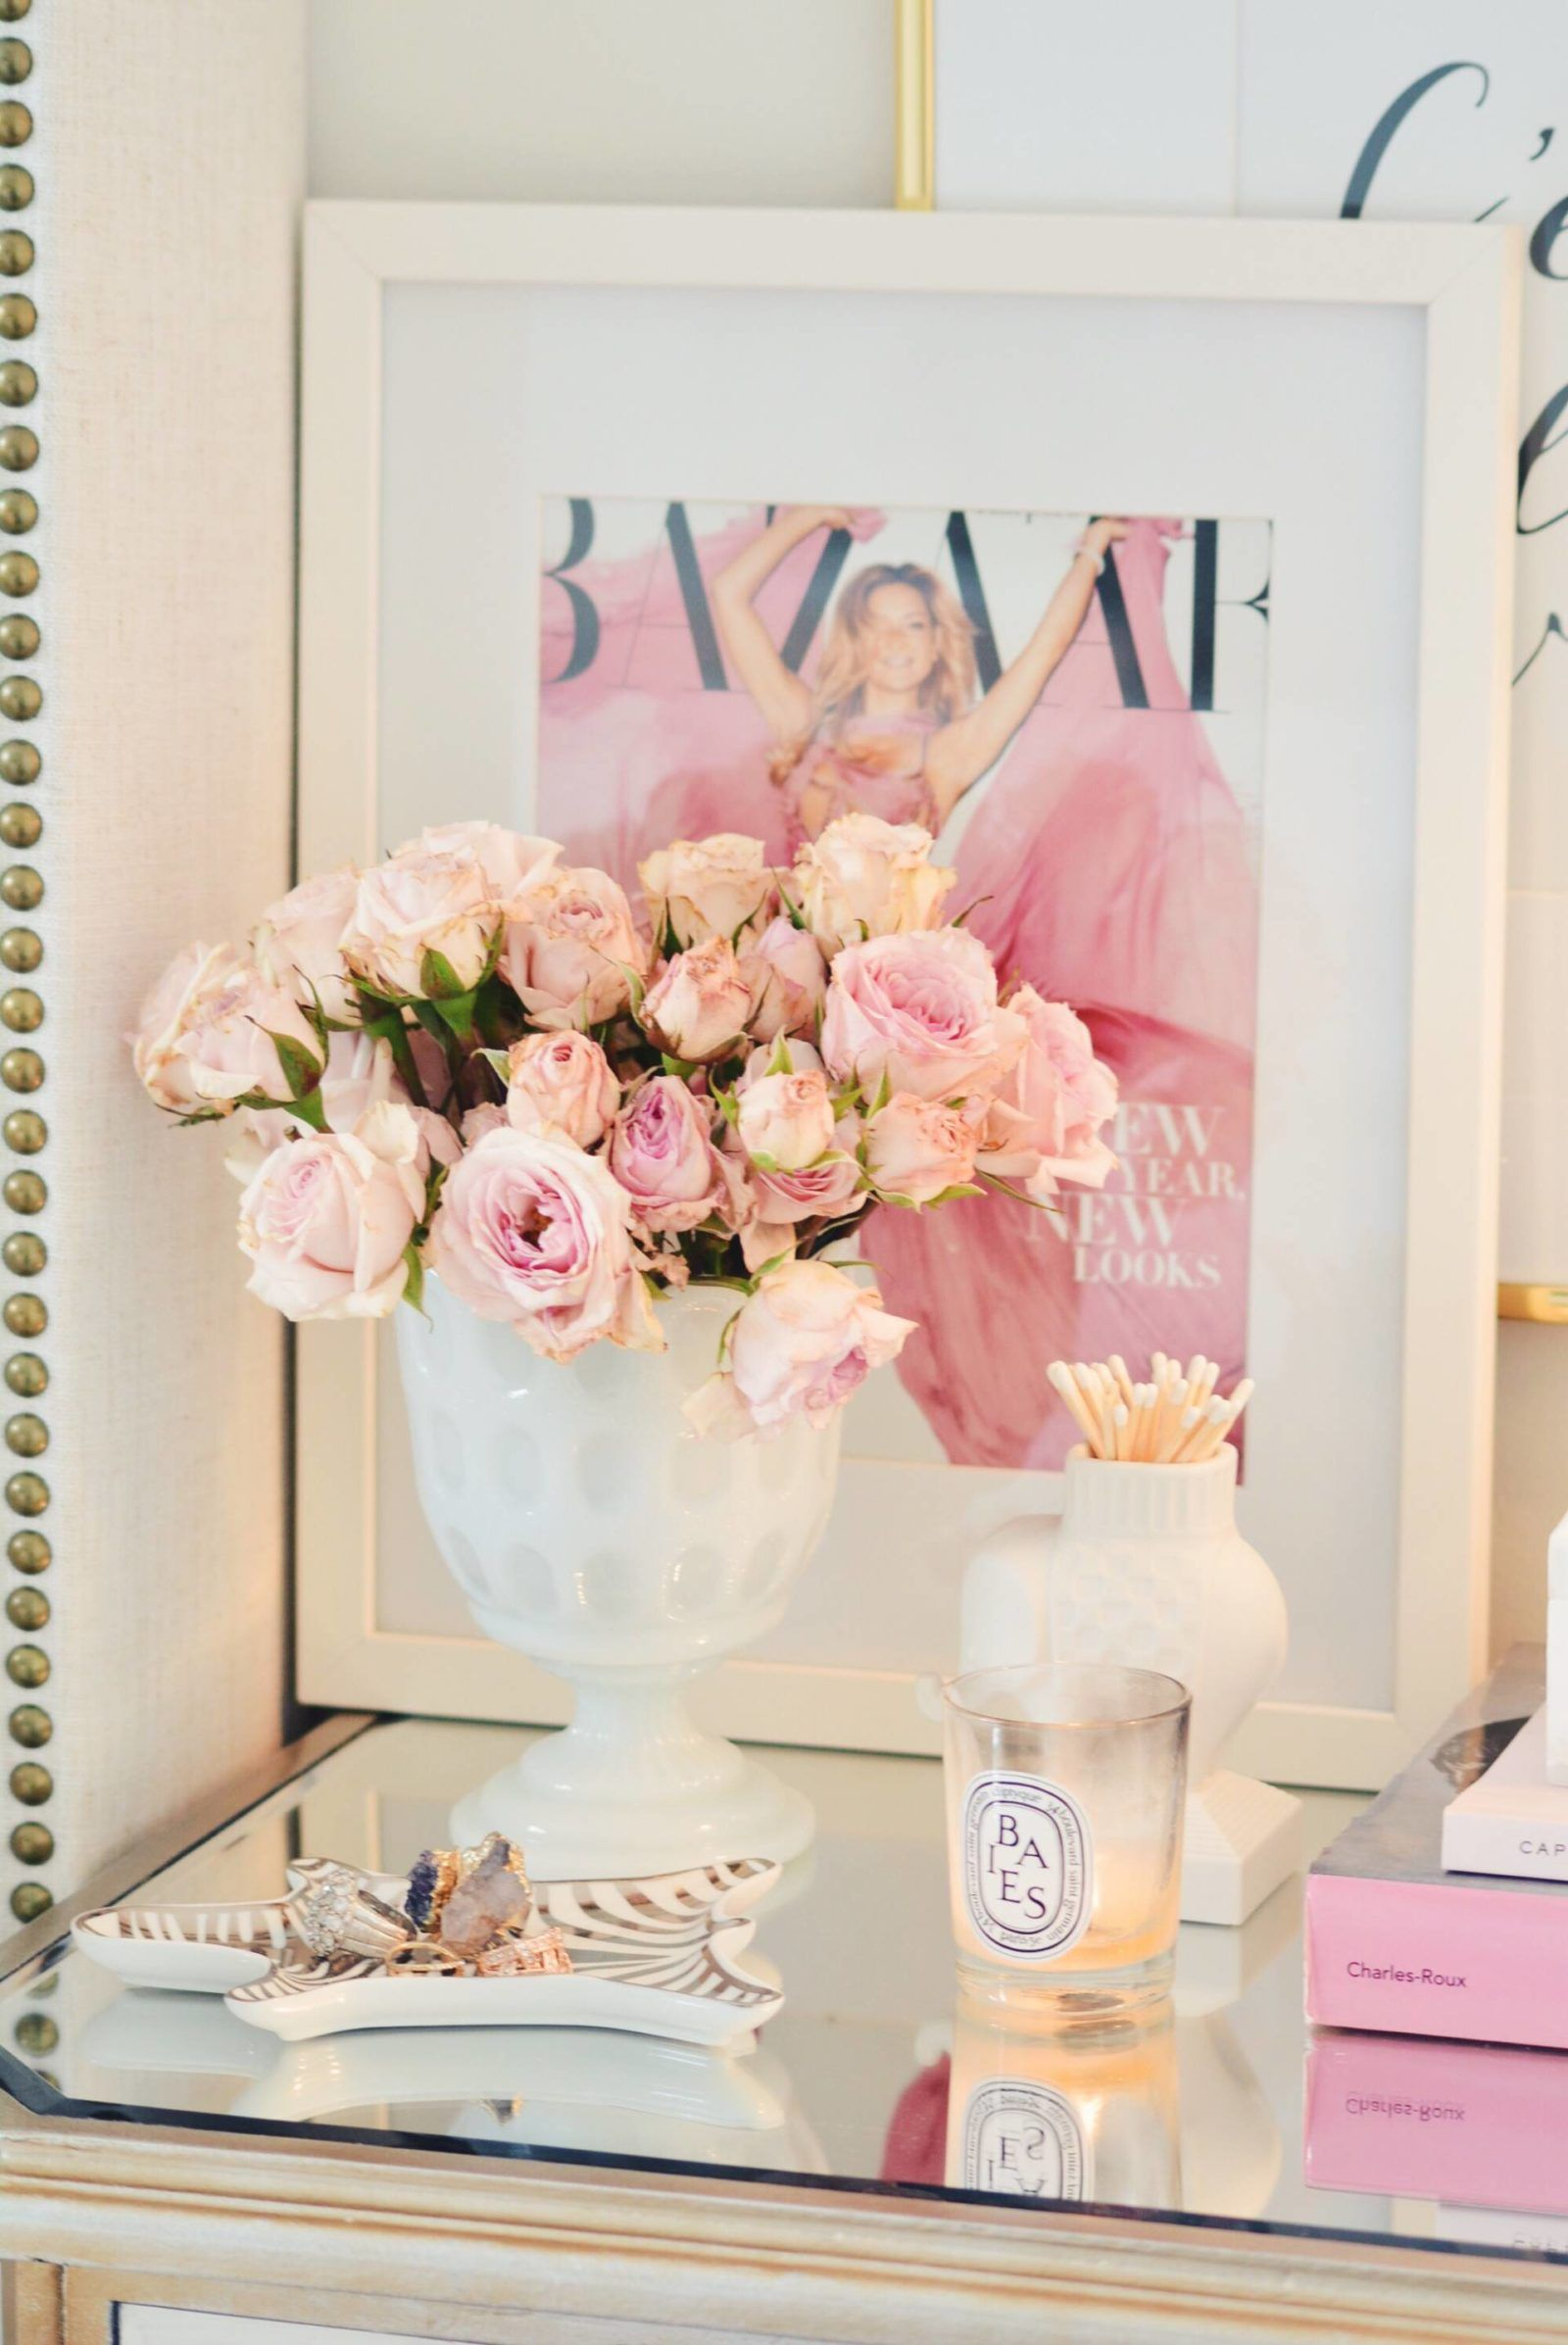 Spring Decor Ideas: Bedroom Tour  - The Pink Dream